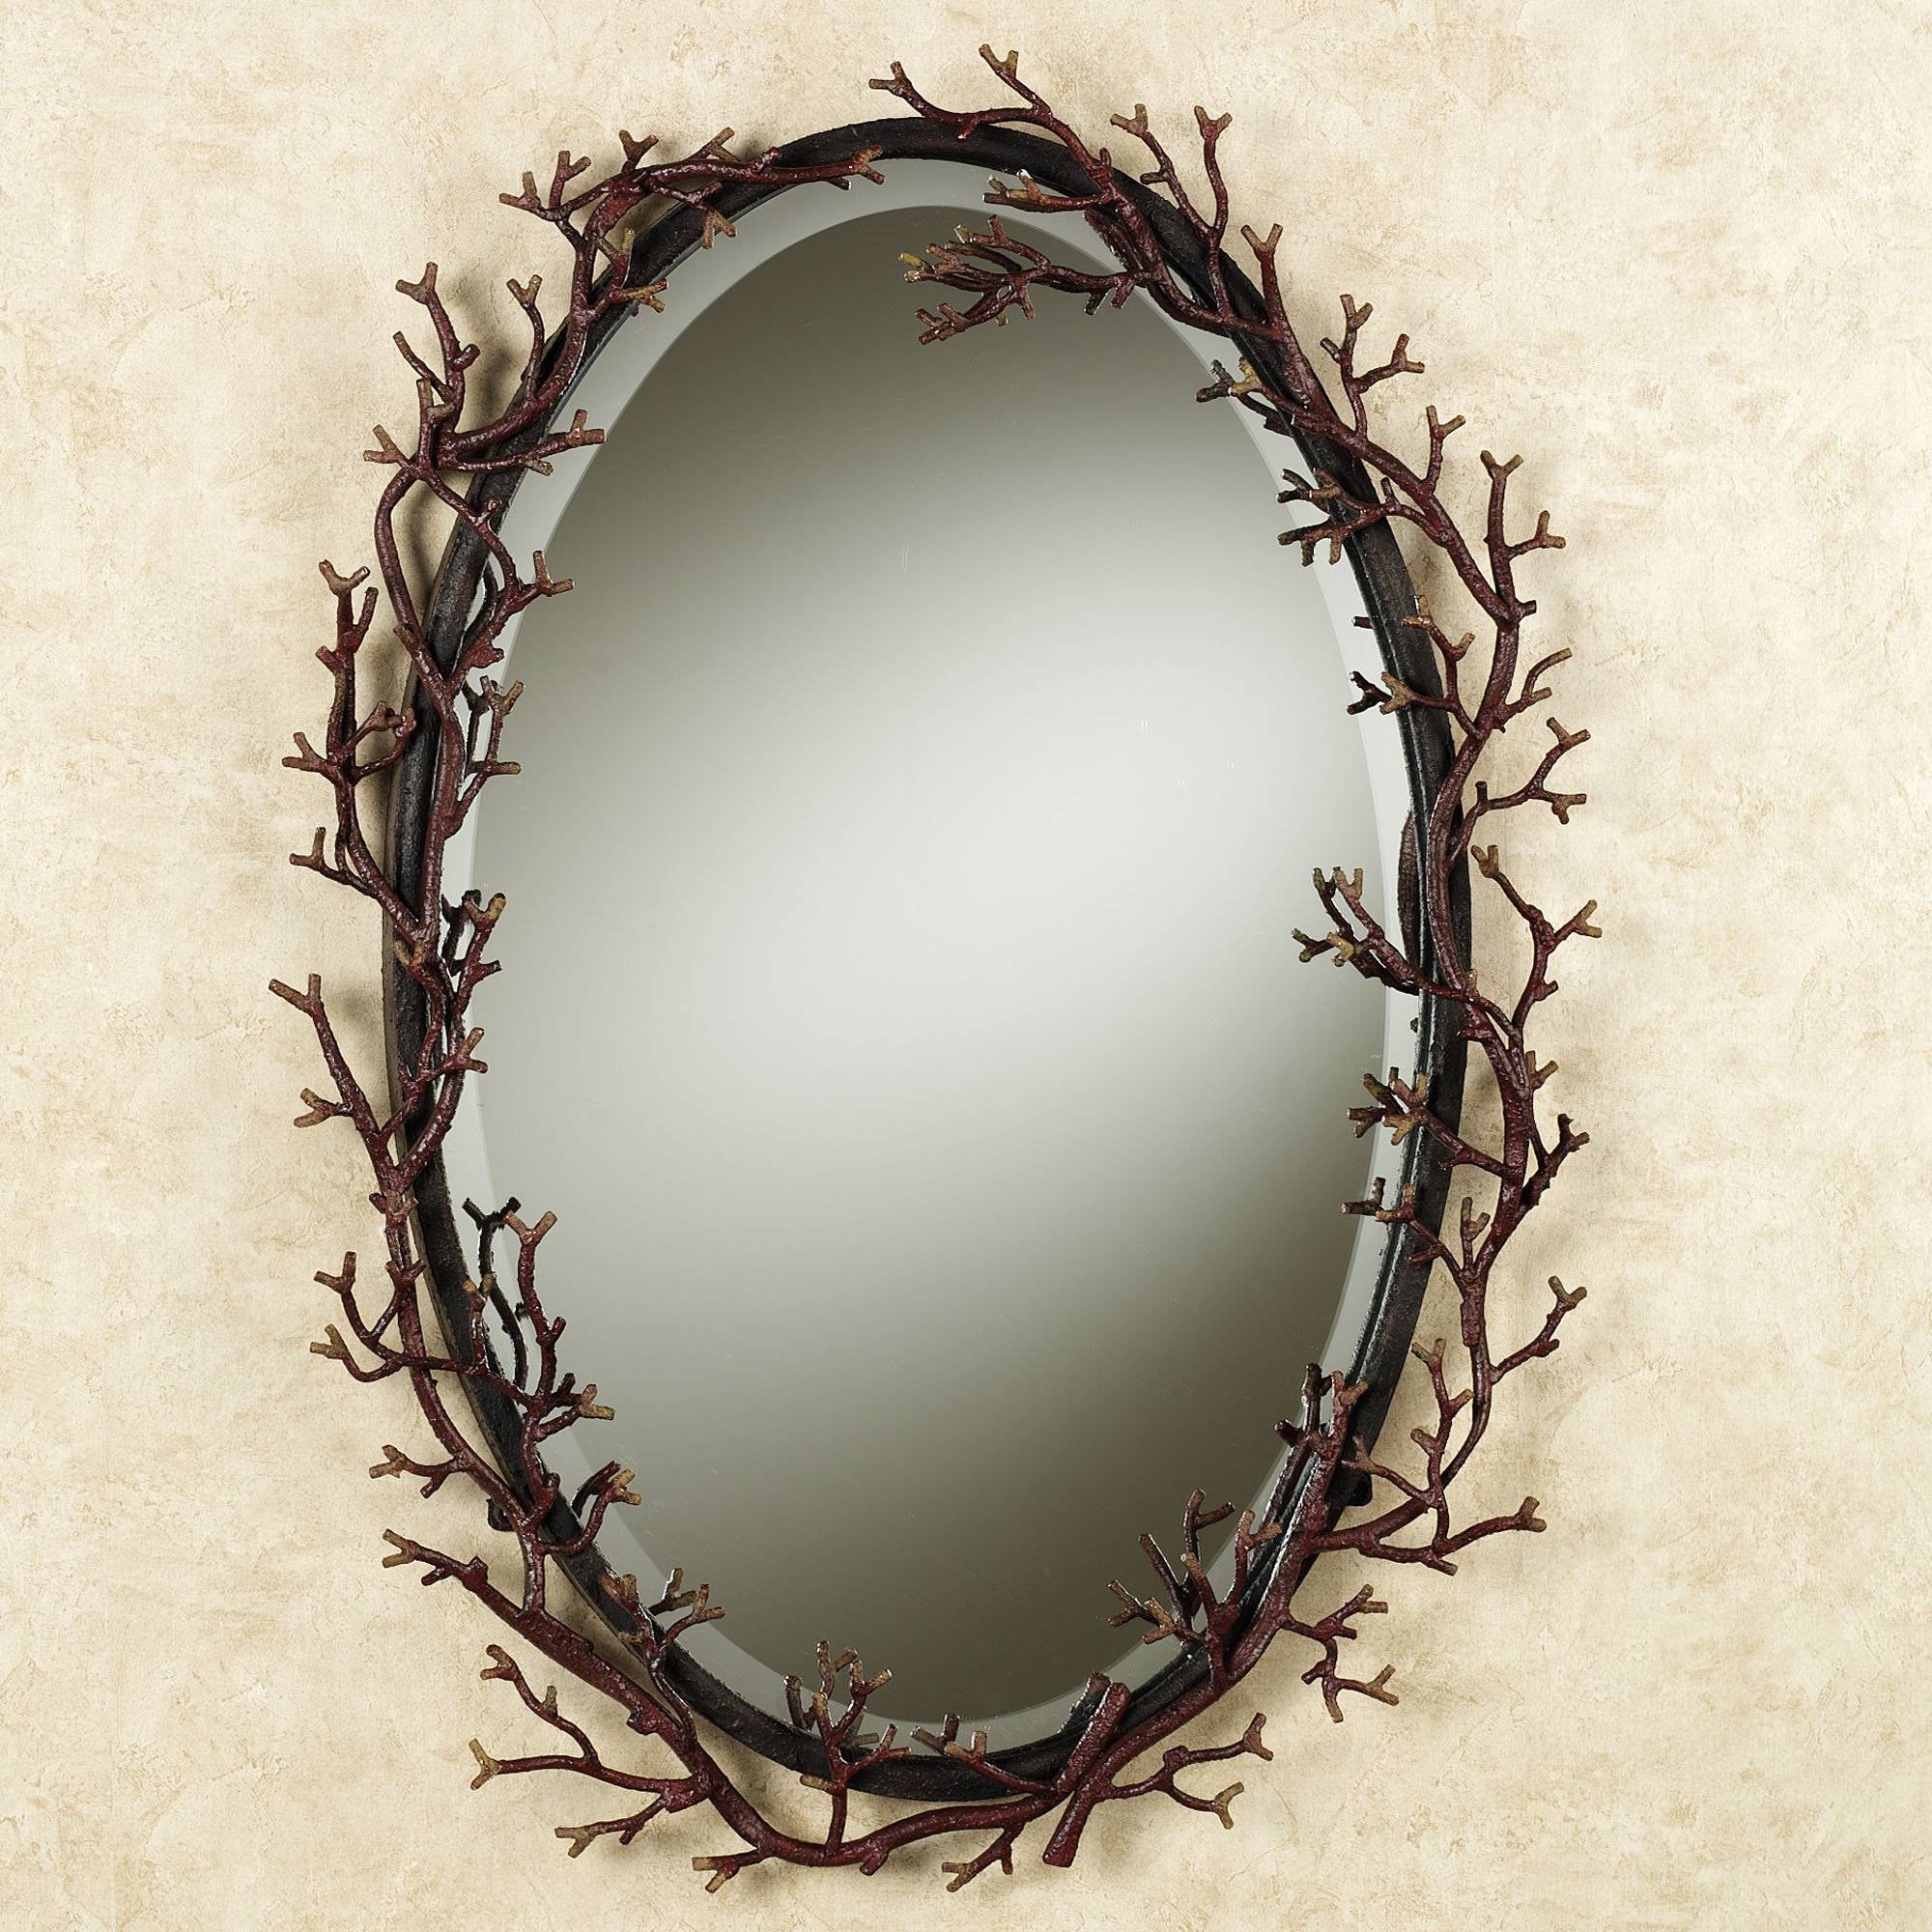 Fantastic Rectangular Wall Mirrors With Black Wooden Frames As inside Black Oval Wall Mirrors (Image 6 of 25)